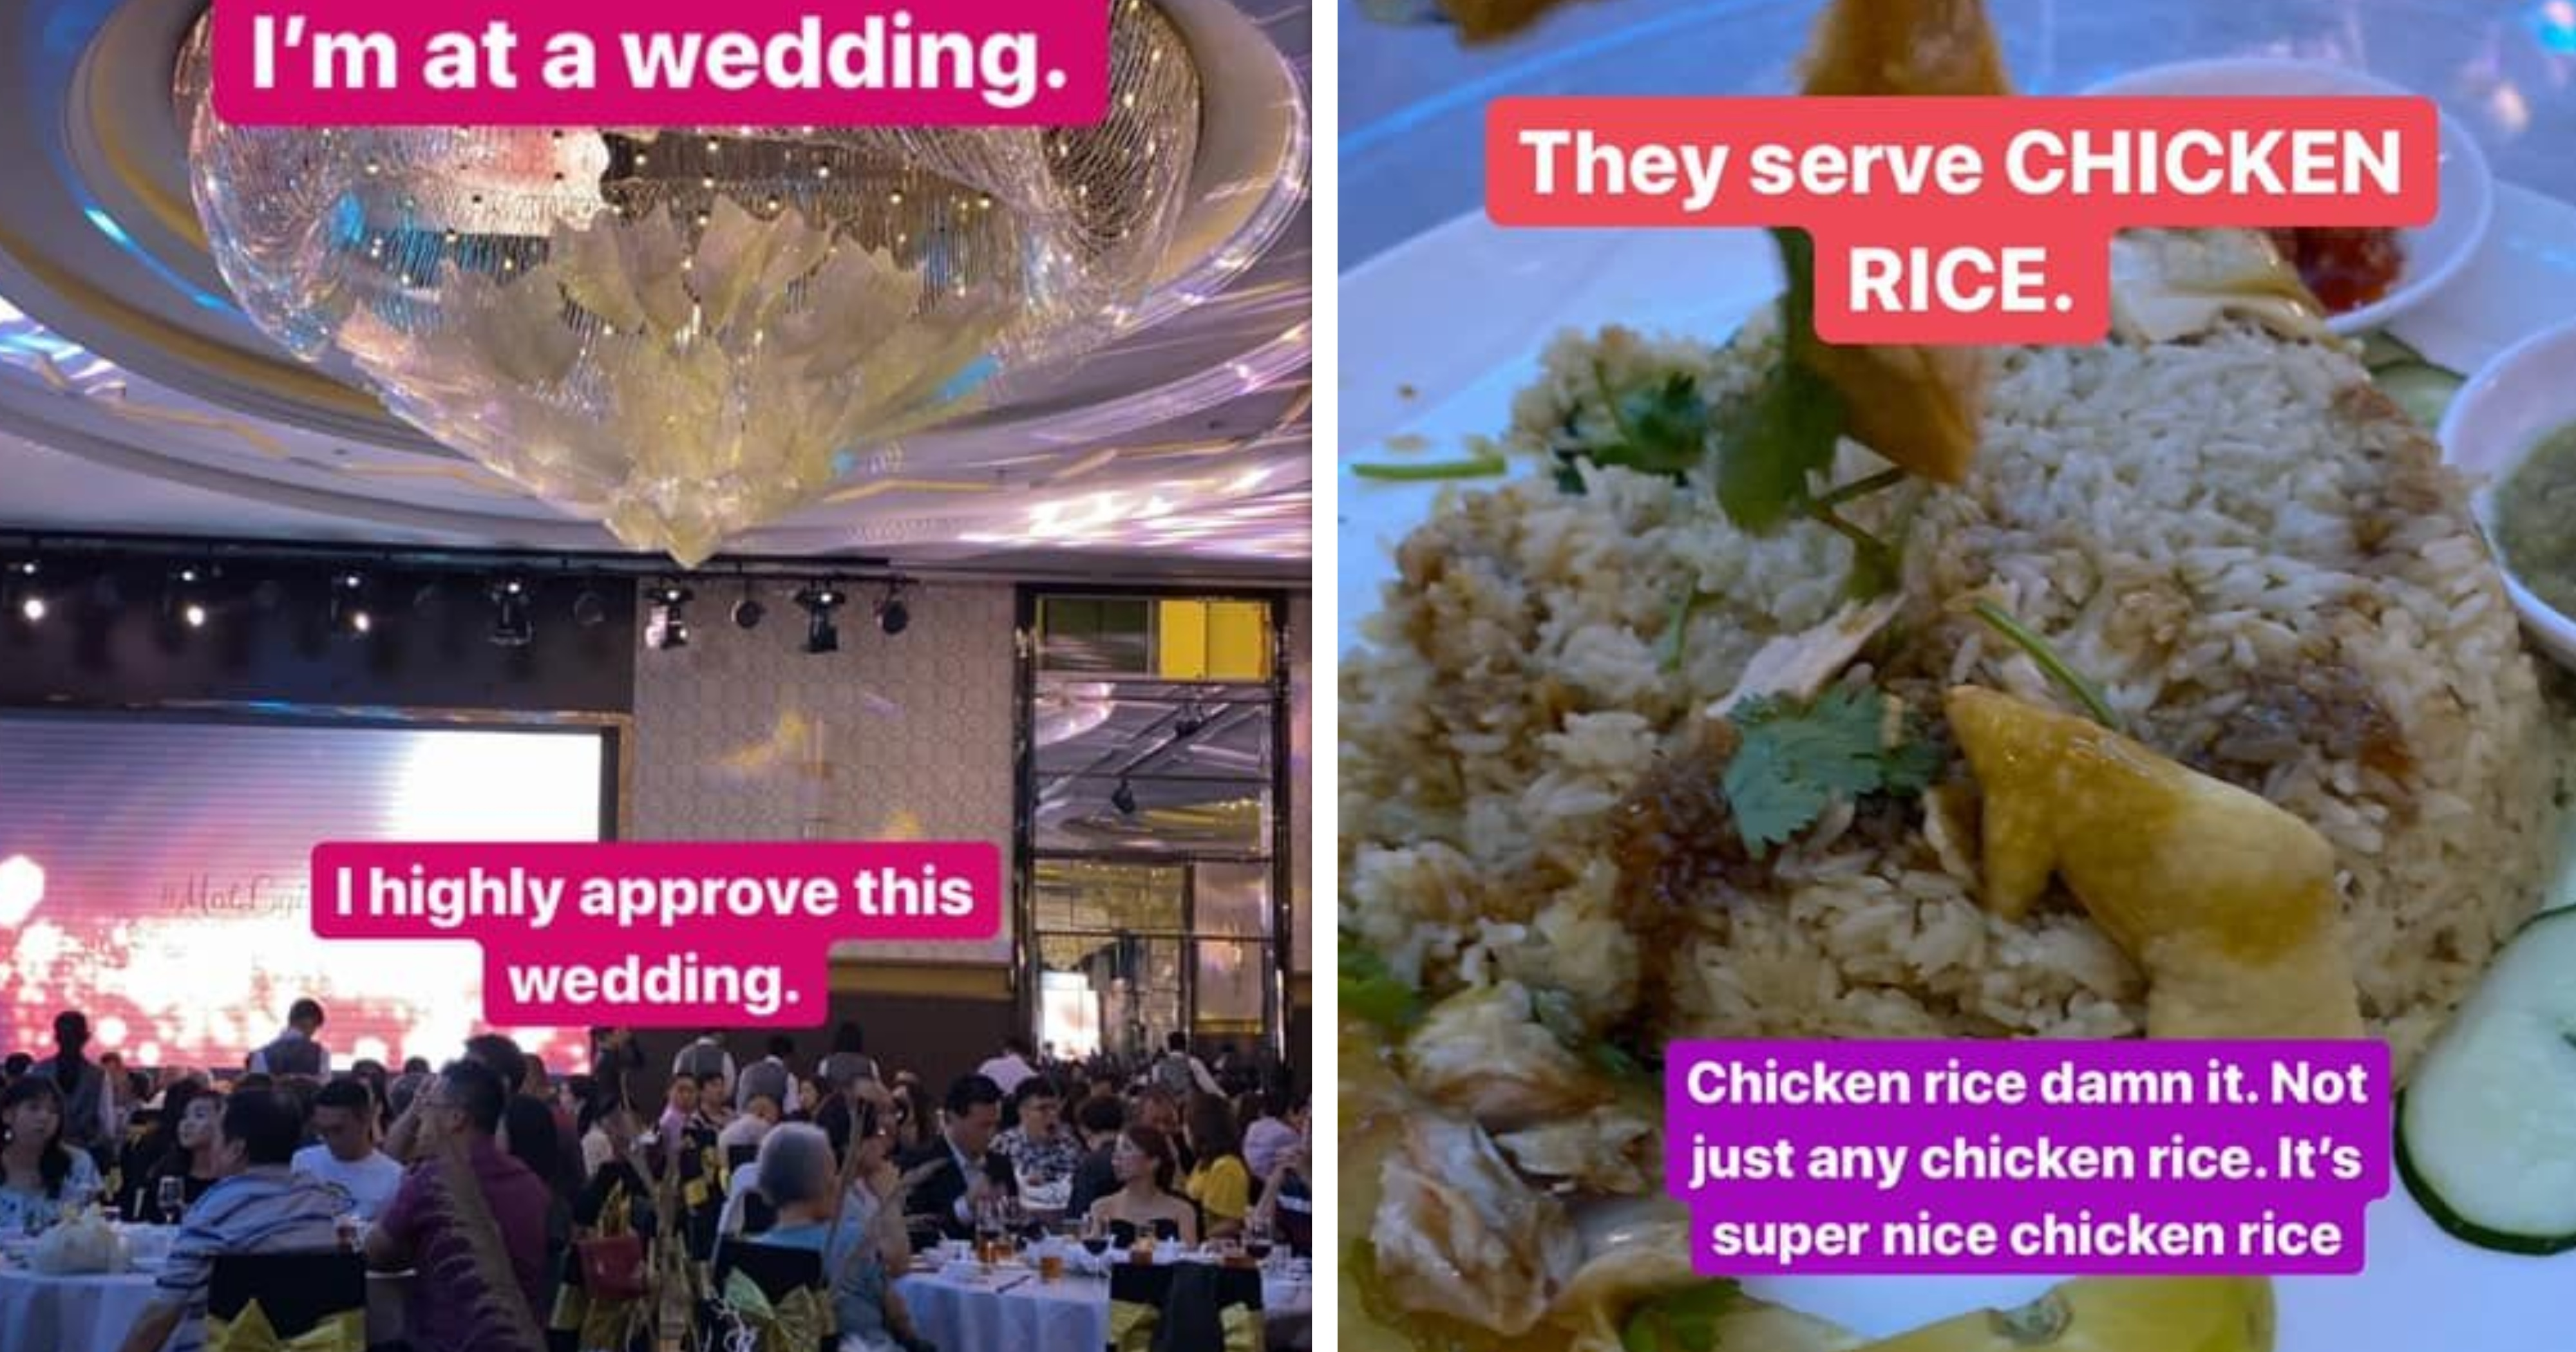 Grand wedding banquet in M'sia serves chicken rice, guest gives it 11 out of 10 rating